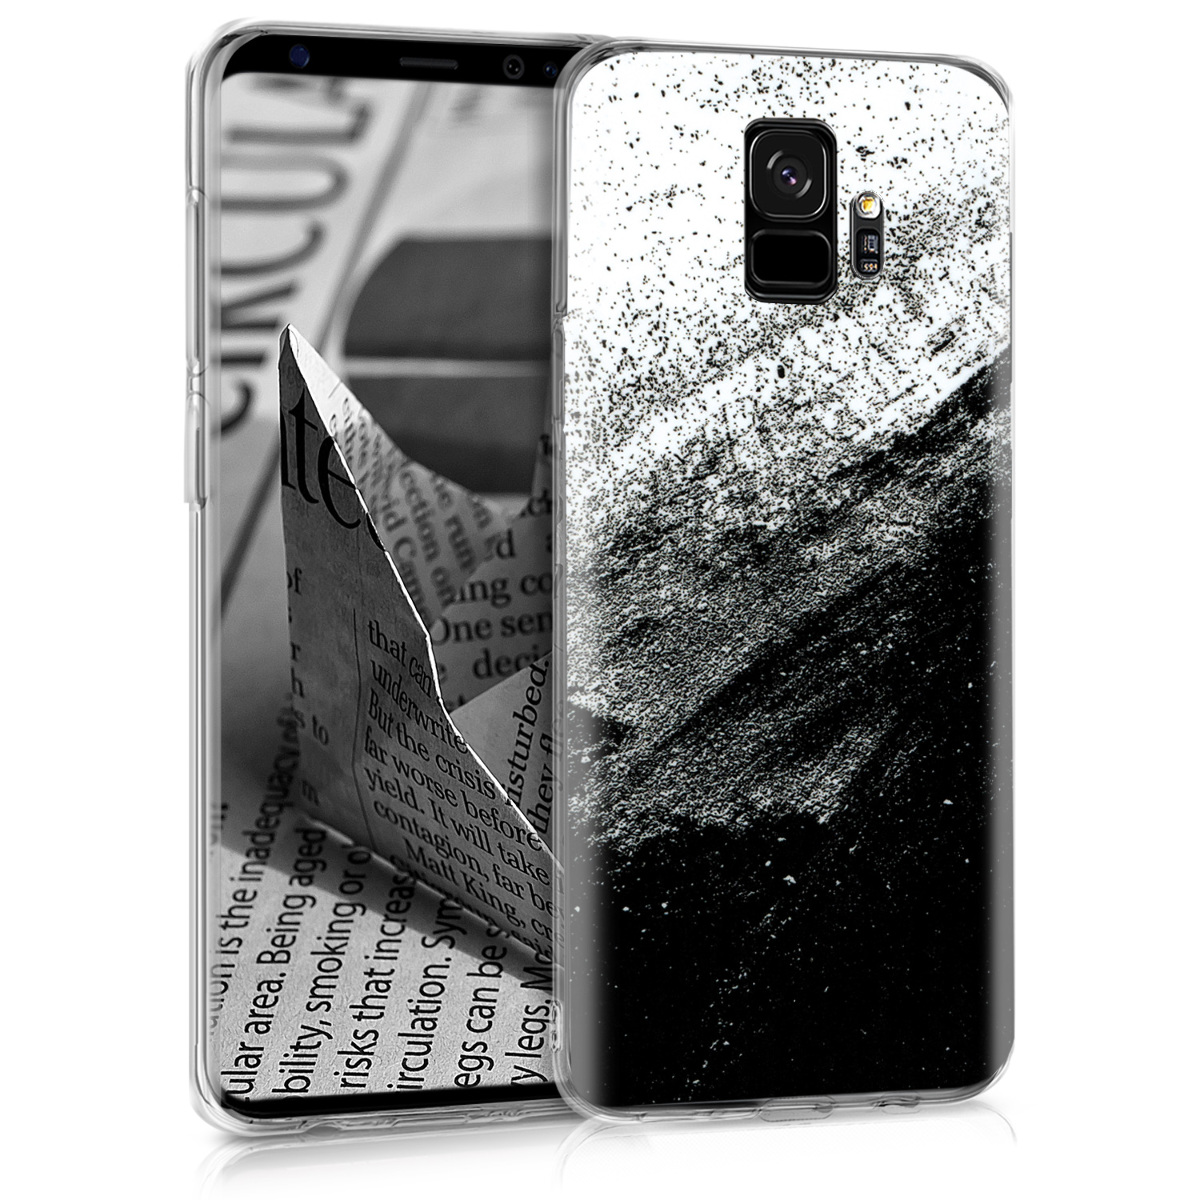 Pouzdro pro Samsung Galaxy S9 - TPU Crystal Clear Back Protective Cover IMD Design - Brushed Ink Black / White